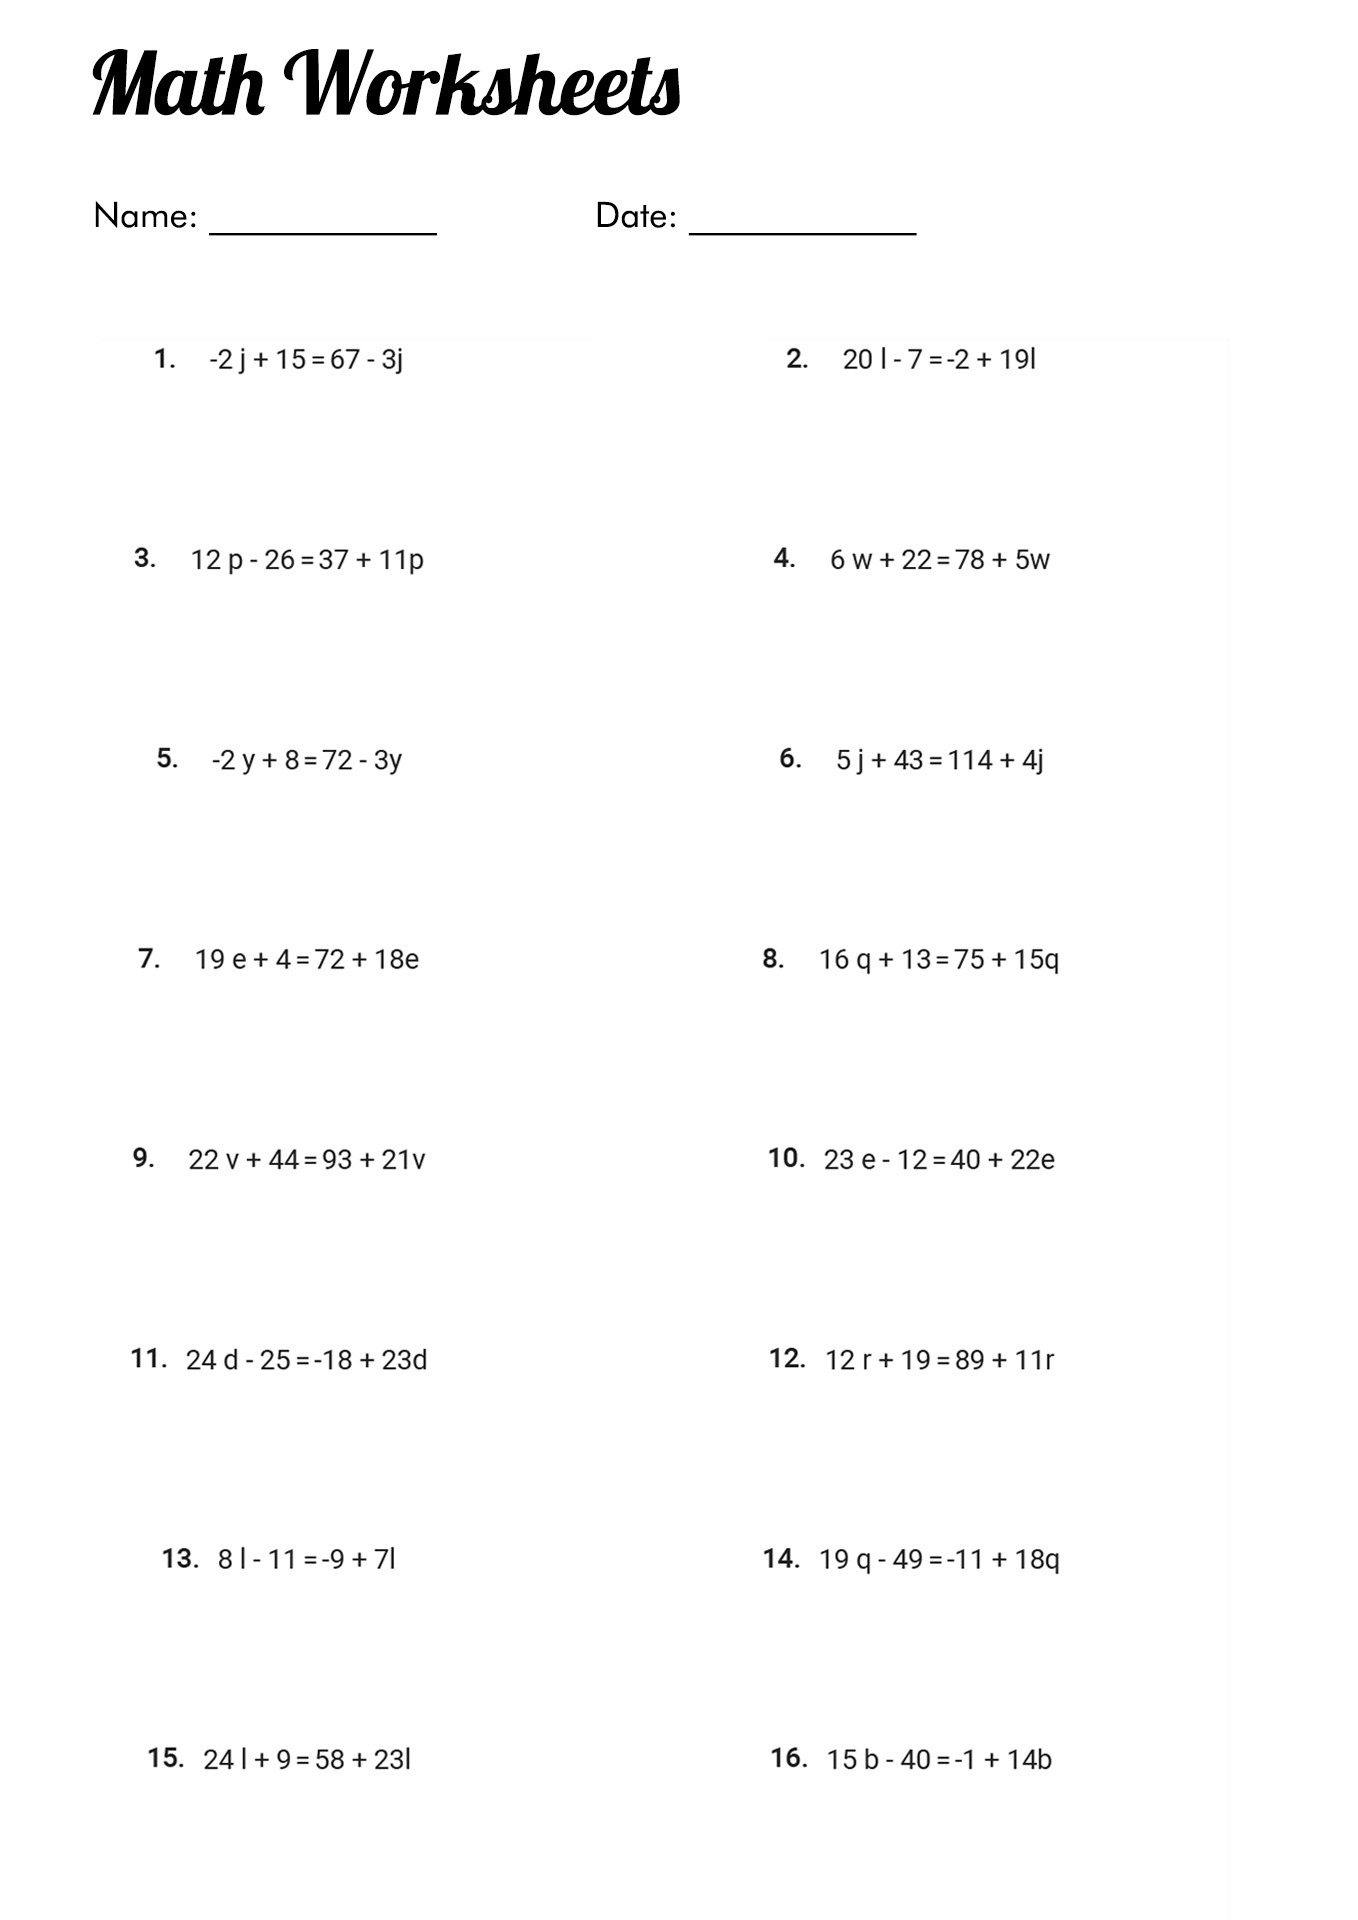 Math Problems Algebra 2 Worksheet